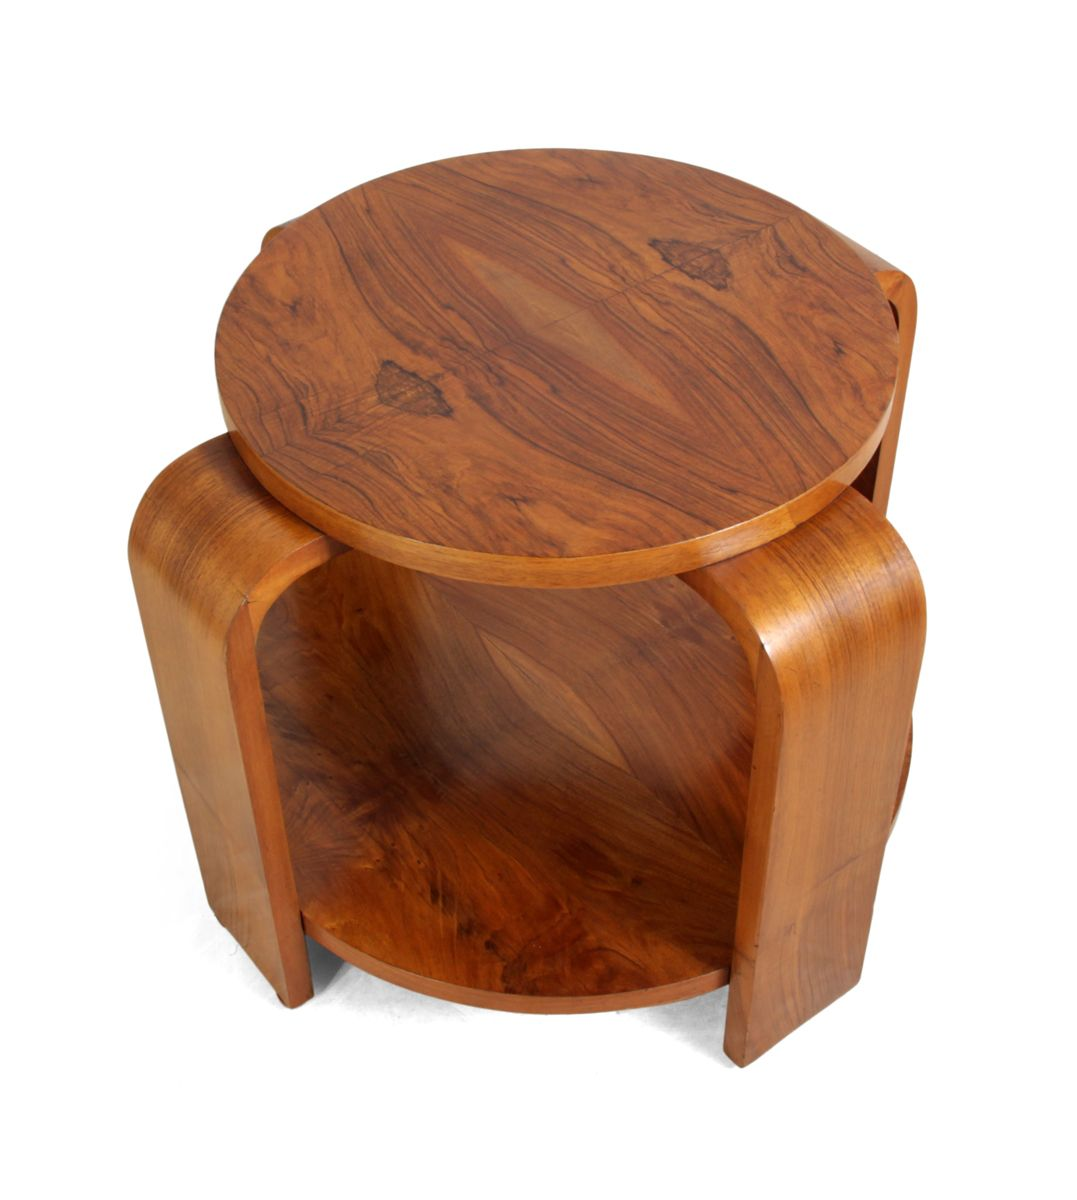 Art deco walnut round coffee table 1930s for sale at pamono for Miroir art deco 1930